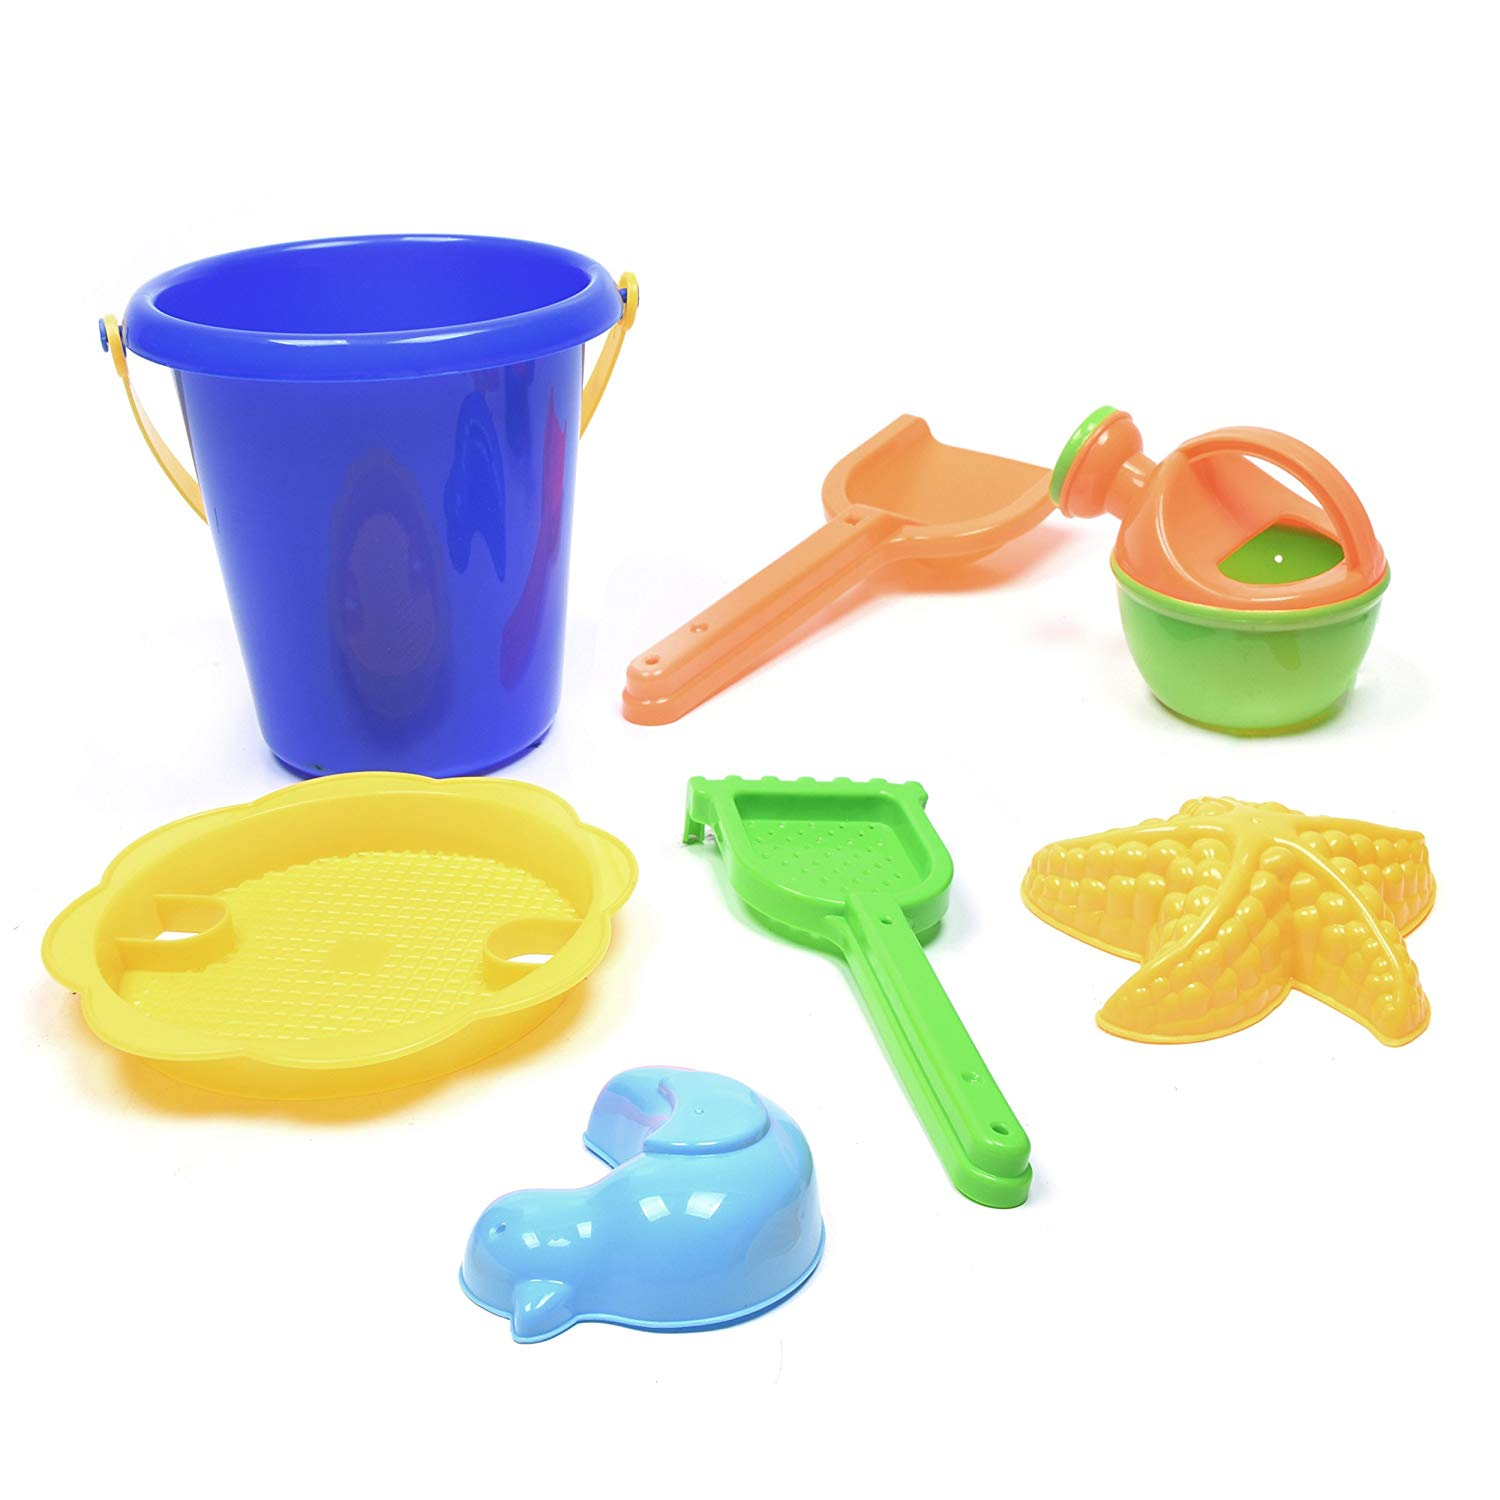 WonderPlay Beach Toys Sand Toys 7 Piece for Kids Toddlers Boys Girls, Bucket, Sand Sifter, Rake, Watering Can, Shovel, Duck and Starfish Molds Included